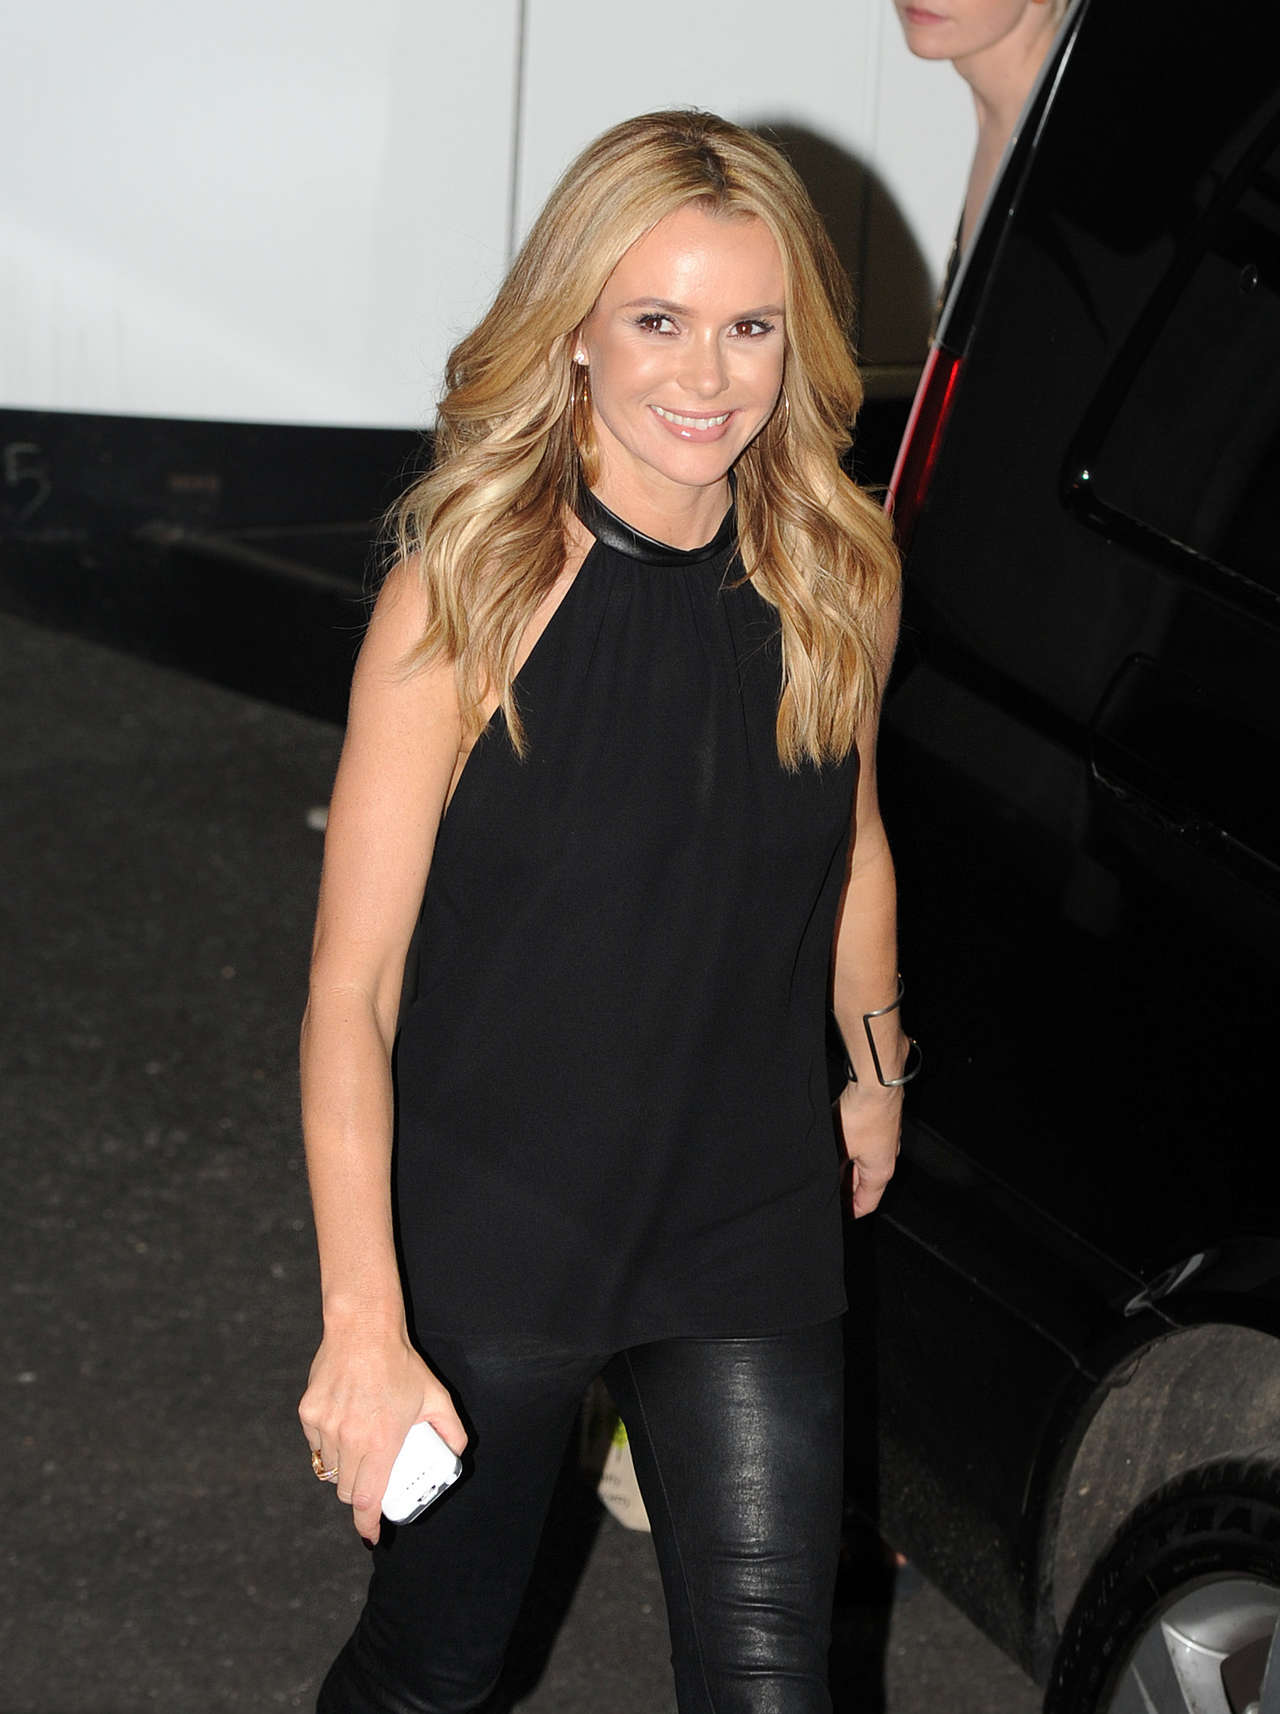 Amanda Holden In Leather Pants 08 Gotceleb